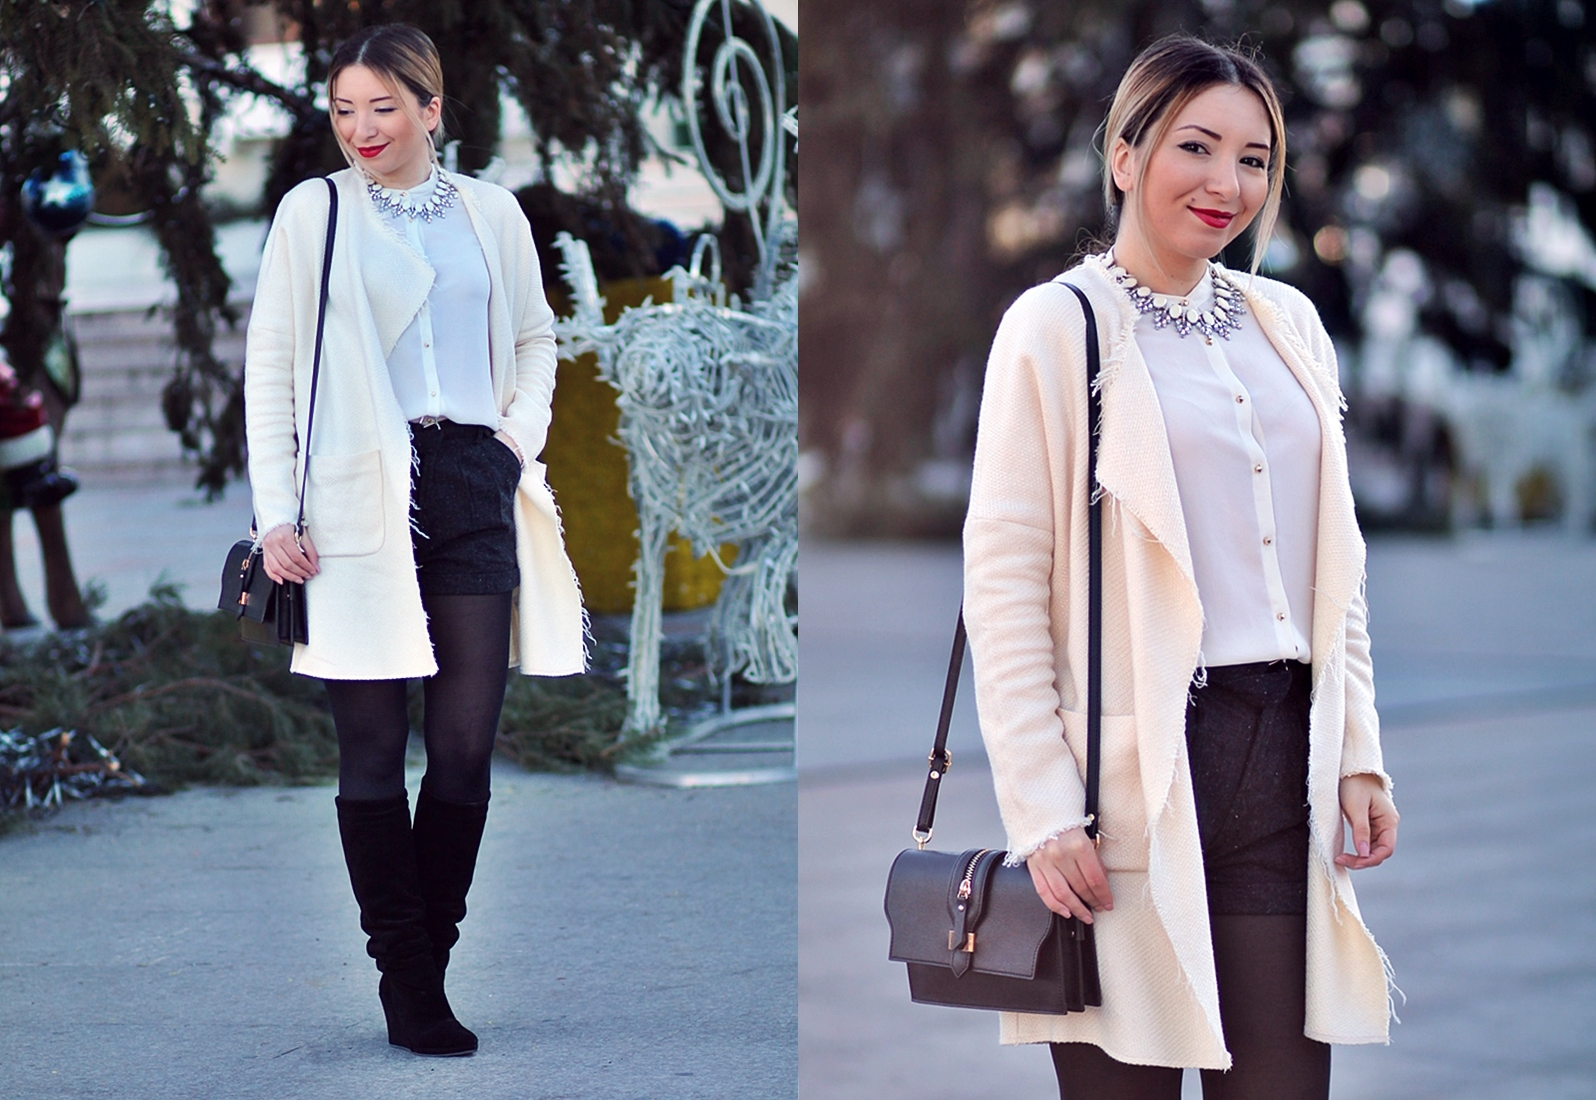 lookbook - black and white - winter look